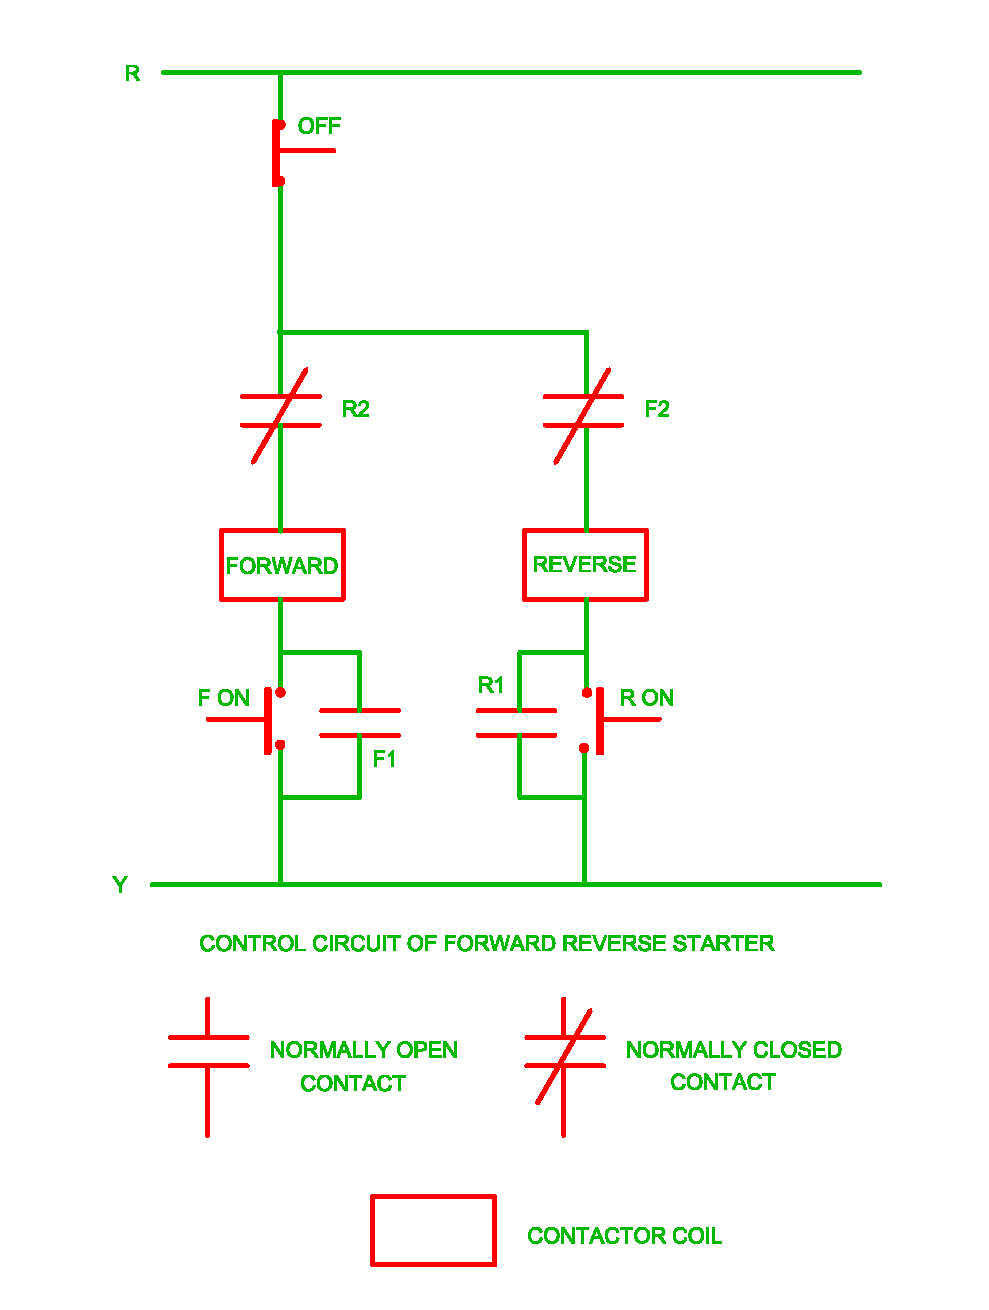 Control Circuit Of Forward Reverse Starter